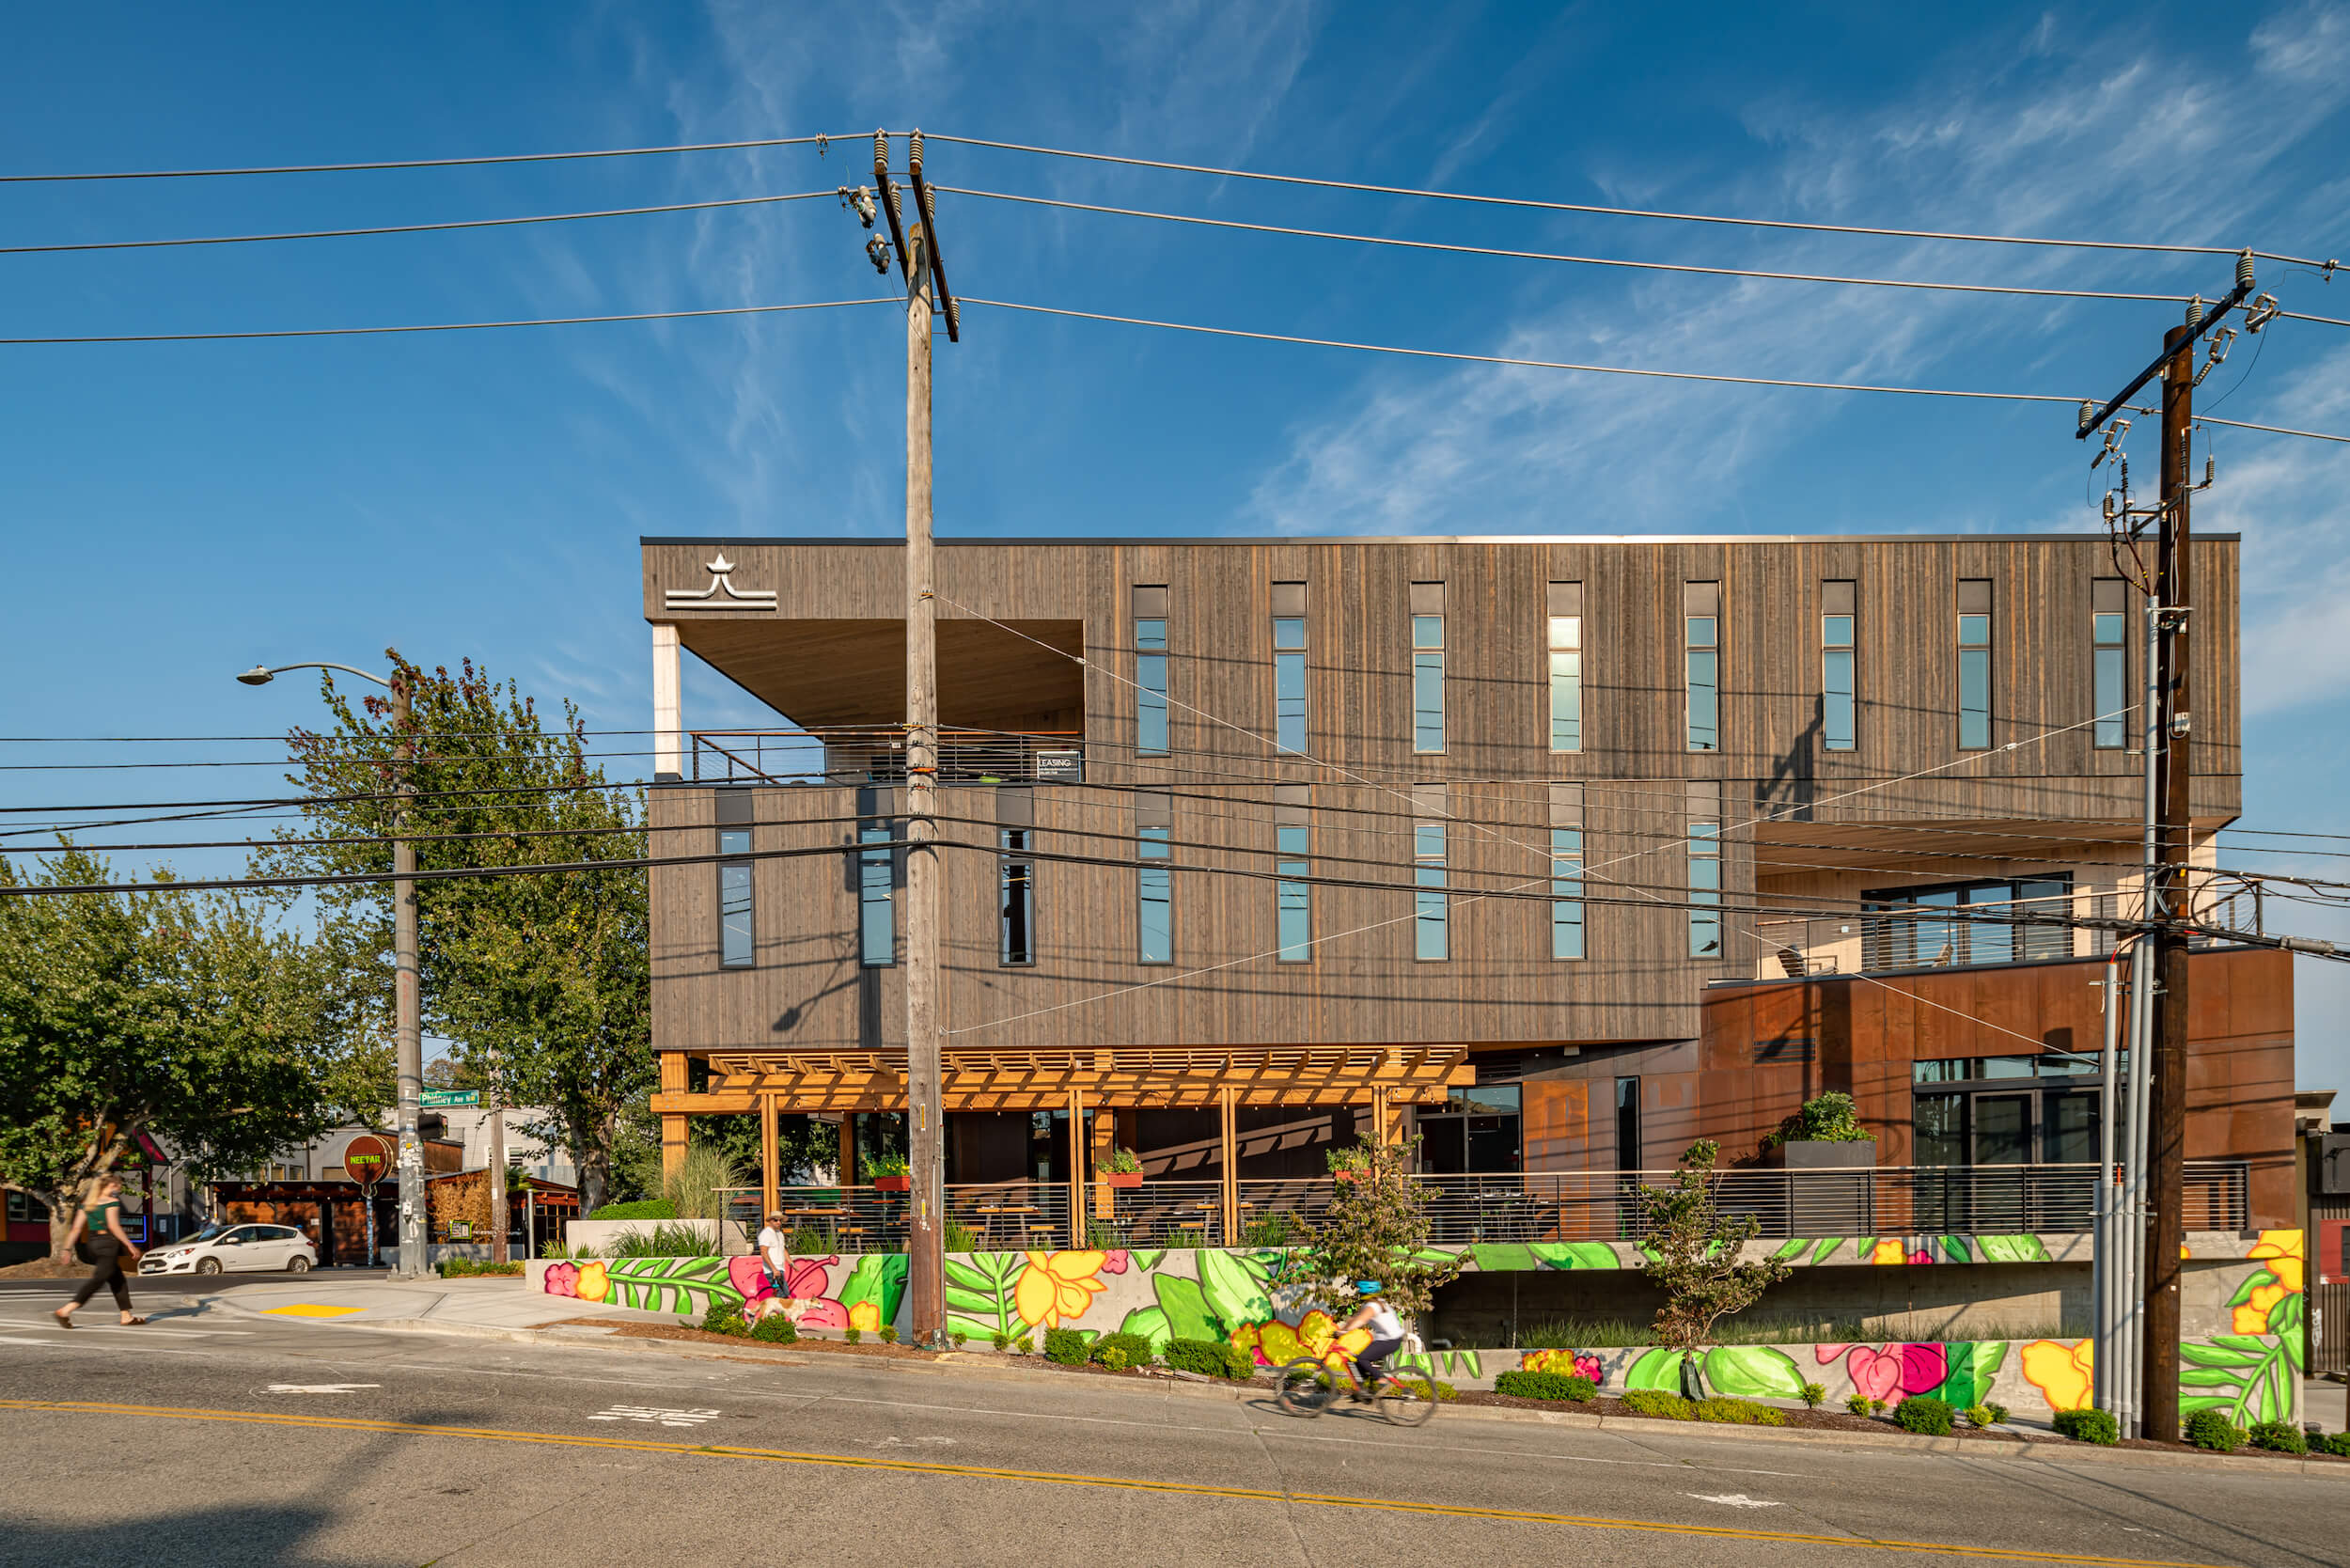 a modern cedar-clad building with a colorful mural